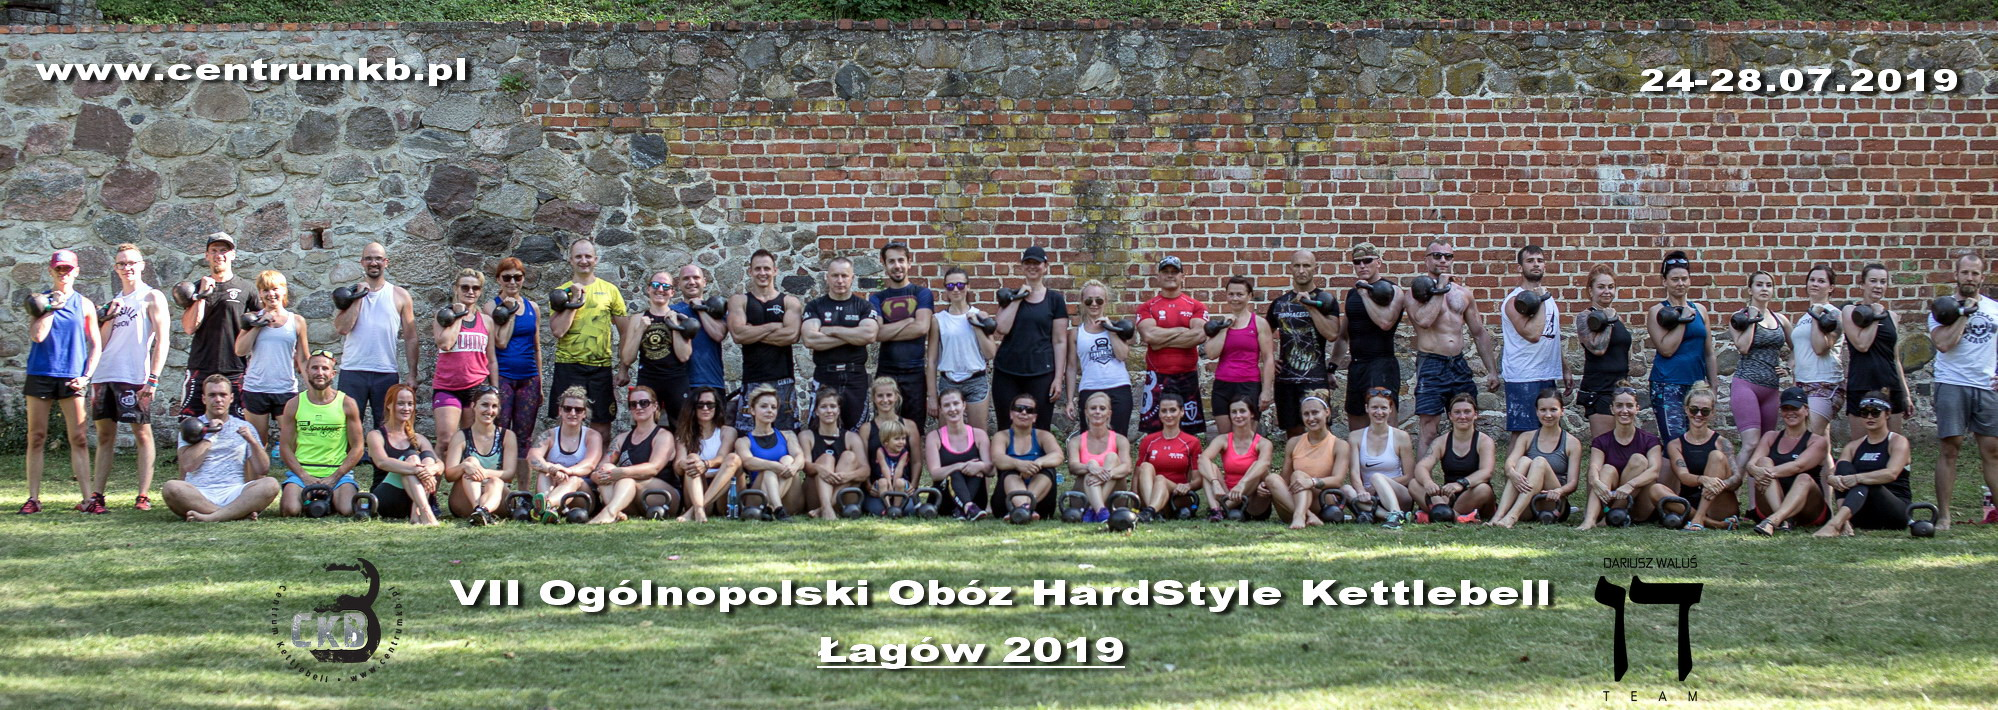 20190724-28_VII_hardstyle_kettlbell_lagow_full